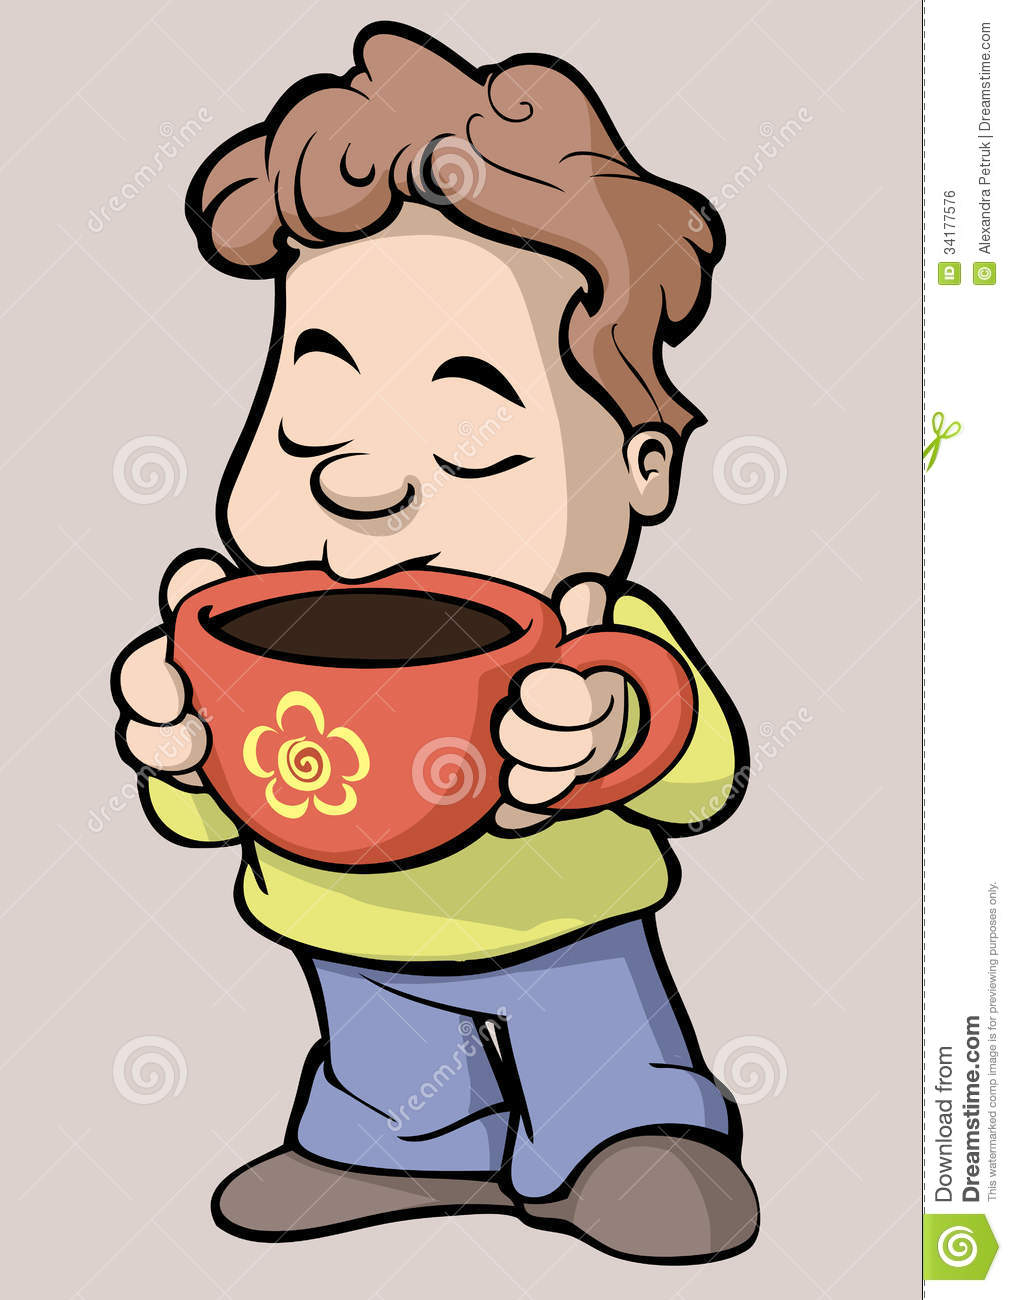 Coffee Time Royalty Free Stock Image - Image: 34177576